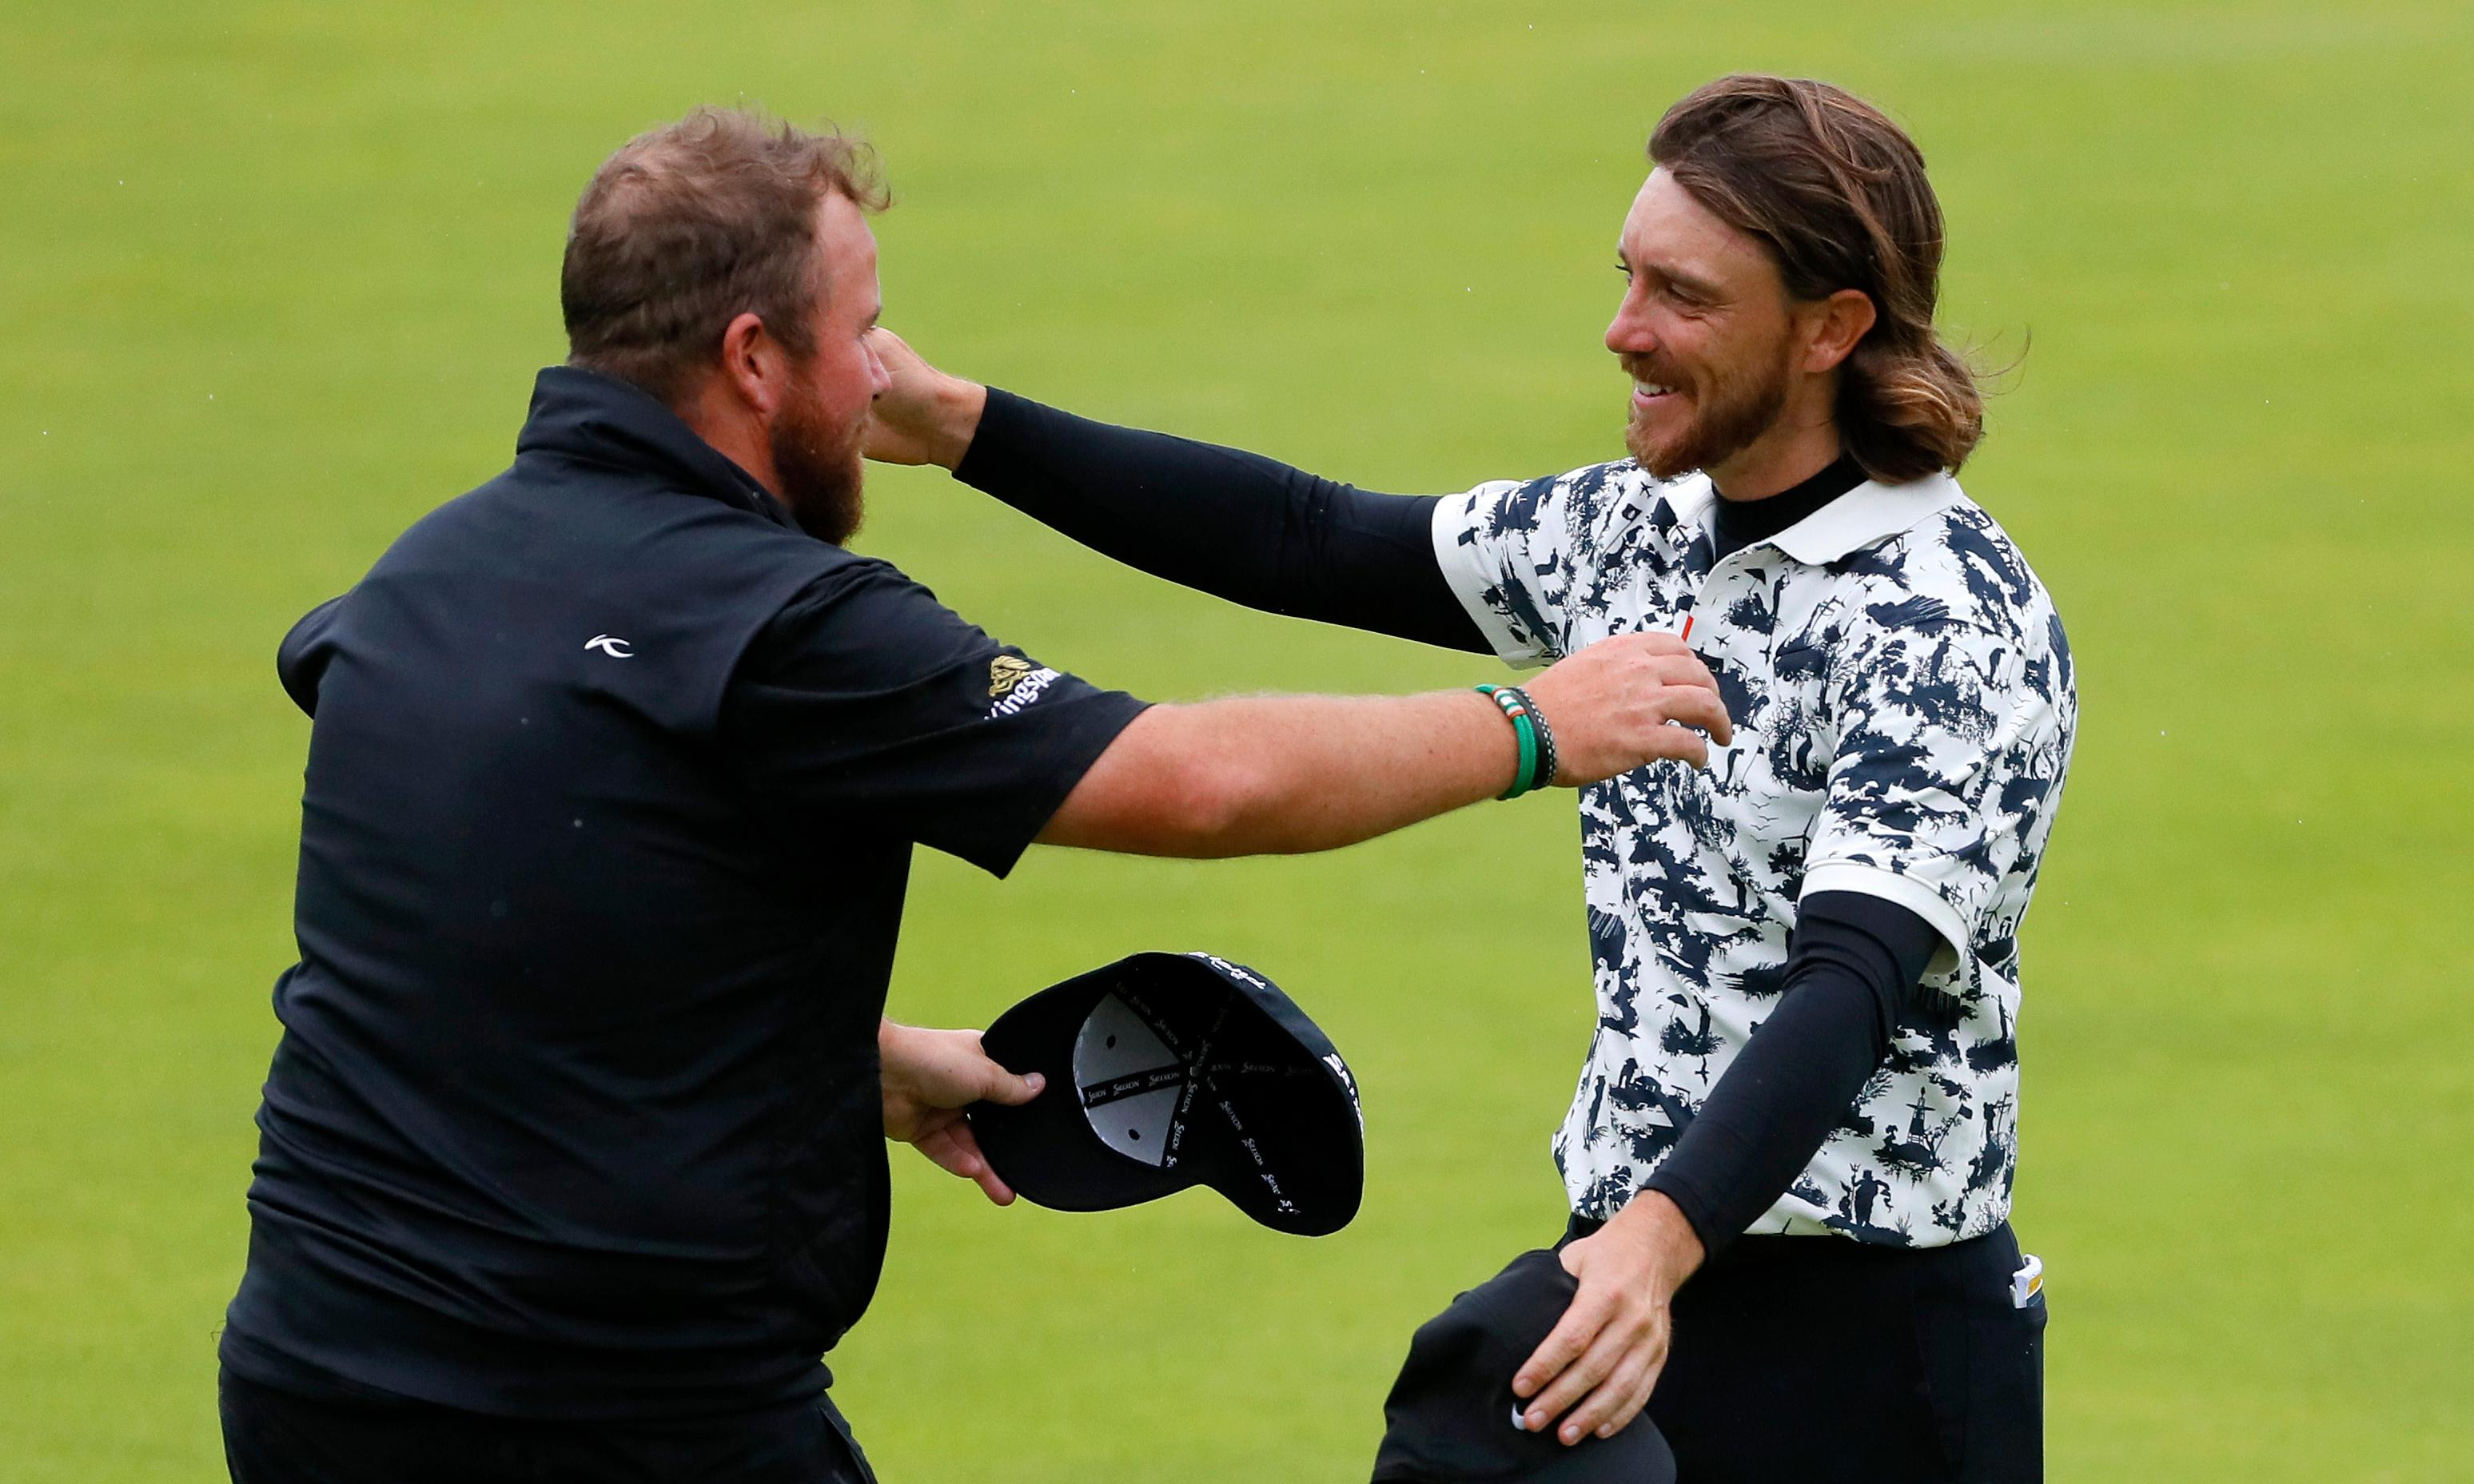 Ireland's Shane Lowry stays calm to win first major at the Open as rivals fade